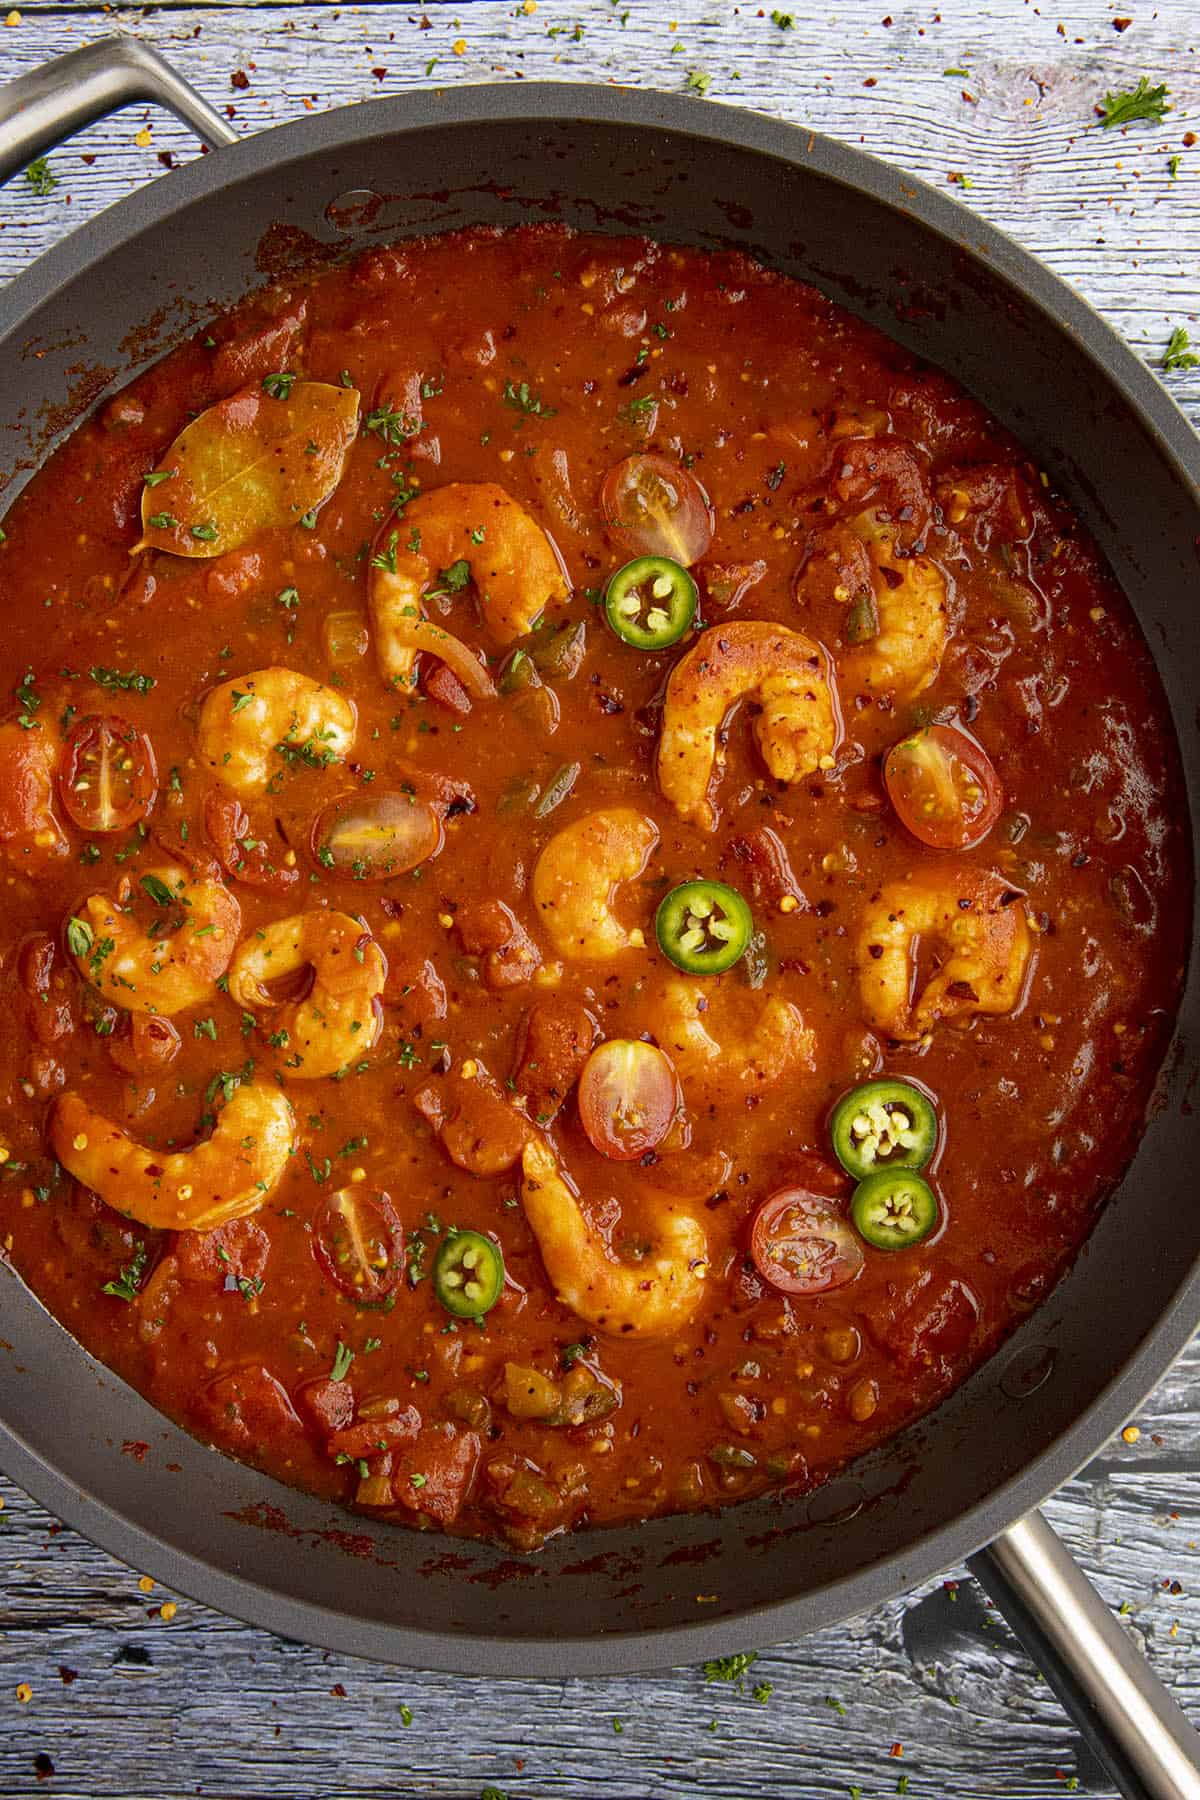 Shrimp Creole in a pan, ready to serve